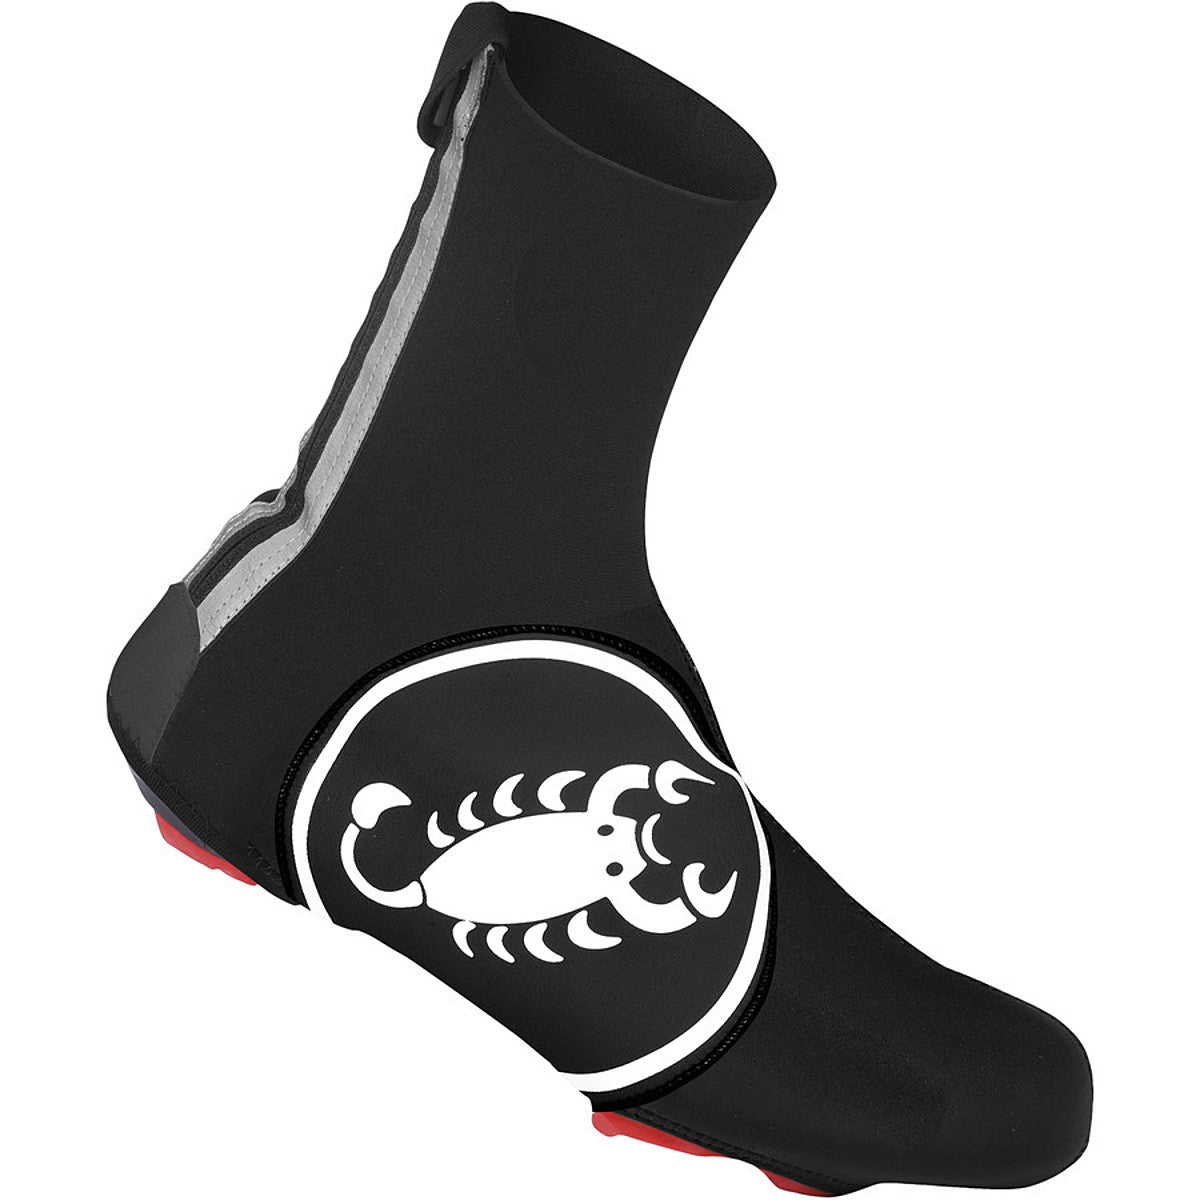 Castelli Diluvio Shoecover 16 - Racer Sportif